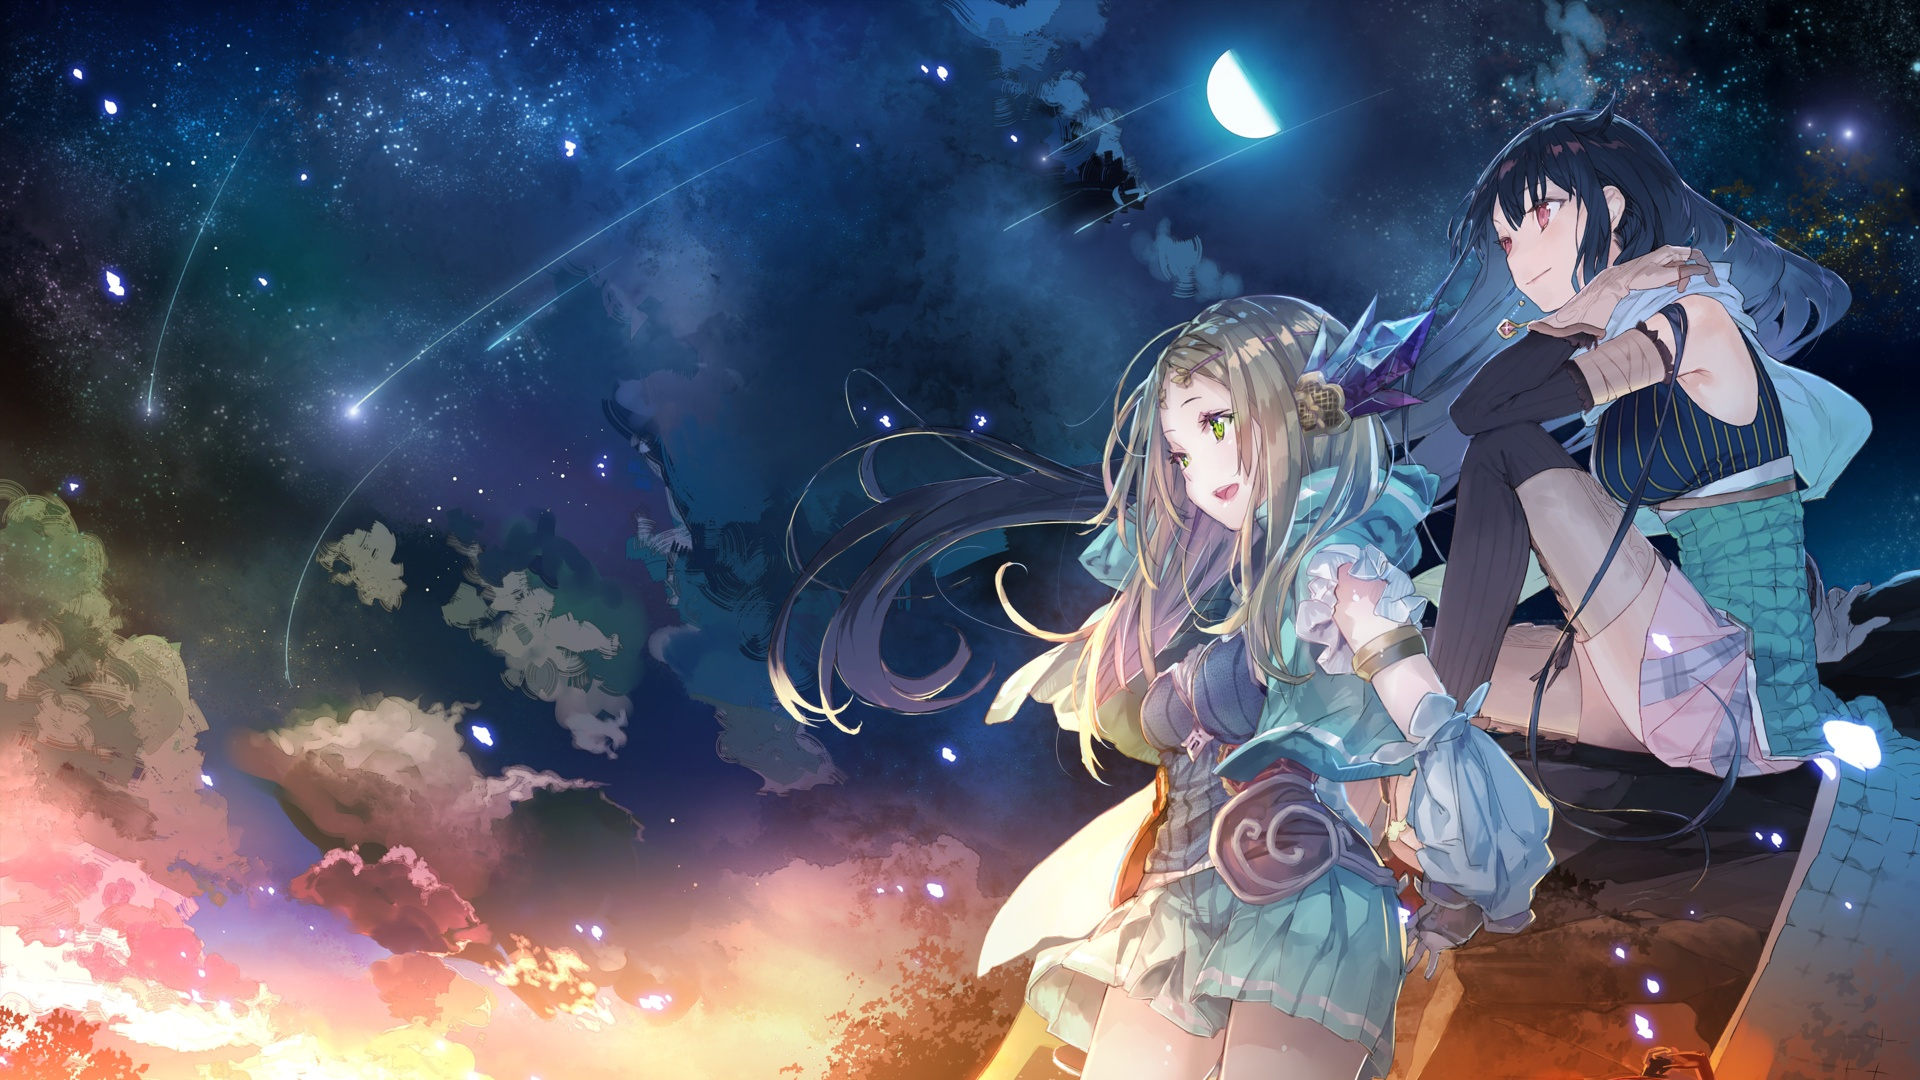 Atelier Firis The Alchemist and the Myterious Journey Wallpaper 001